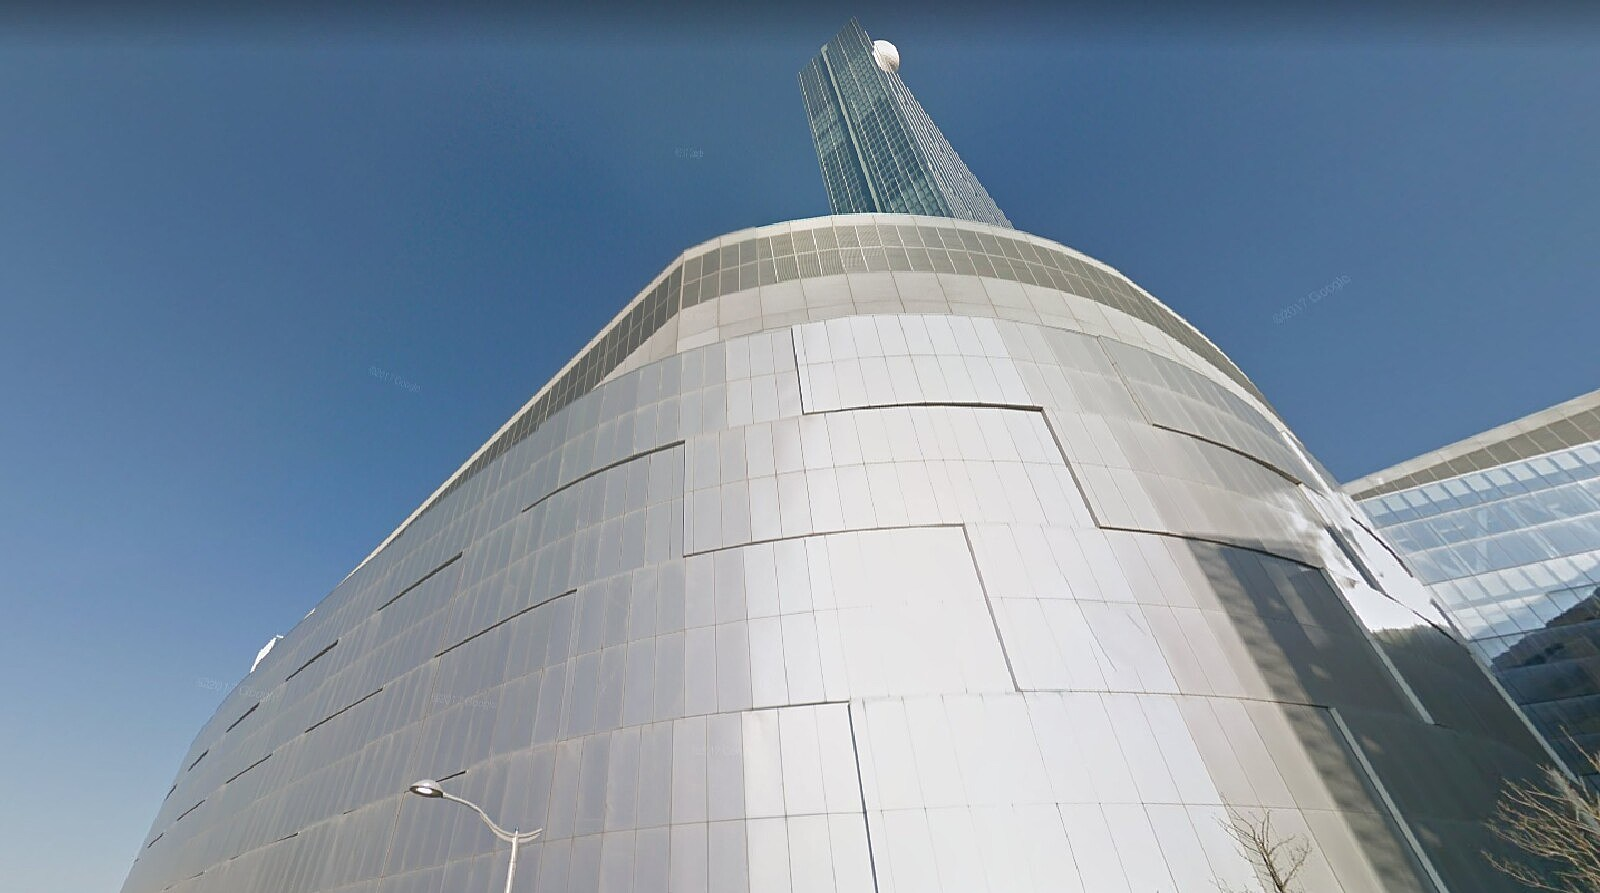 What are the 5 Tallest Buildings in Atlantic City?